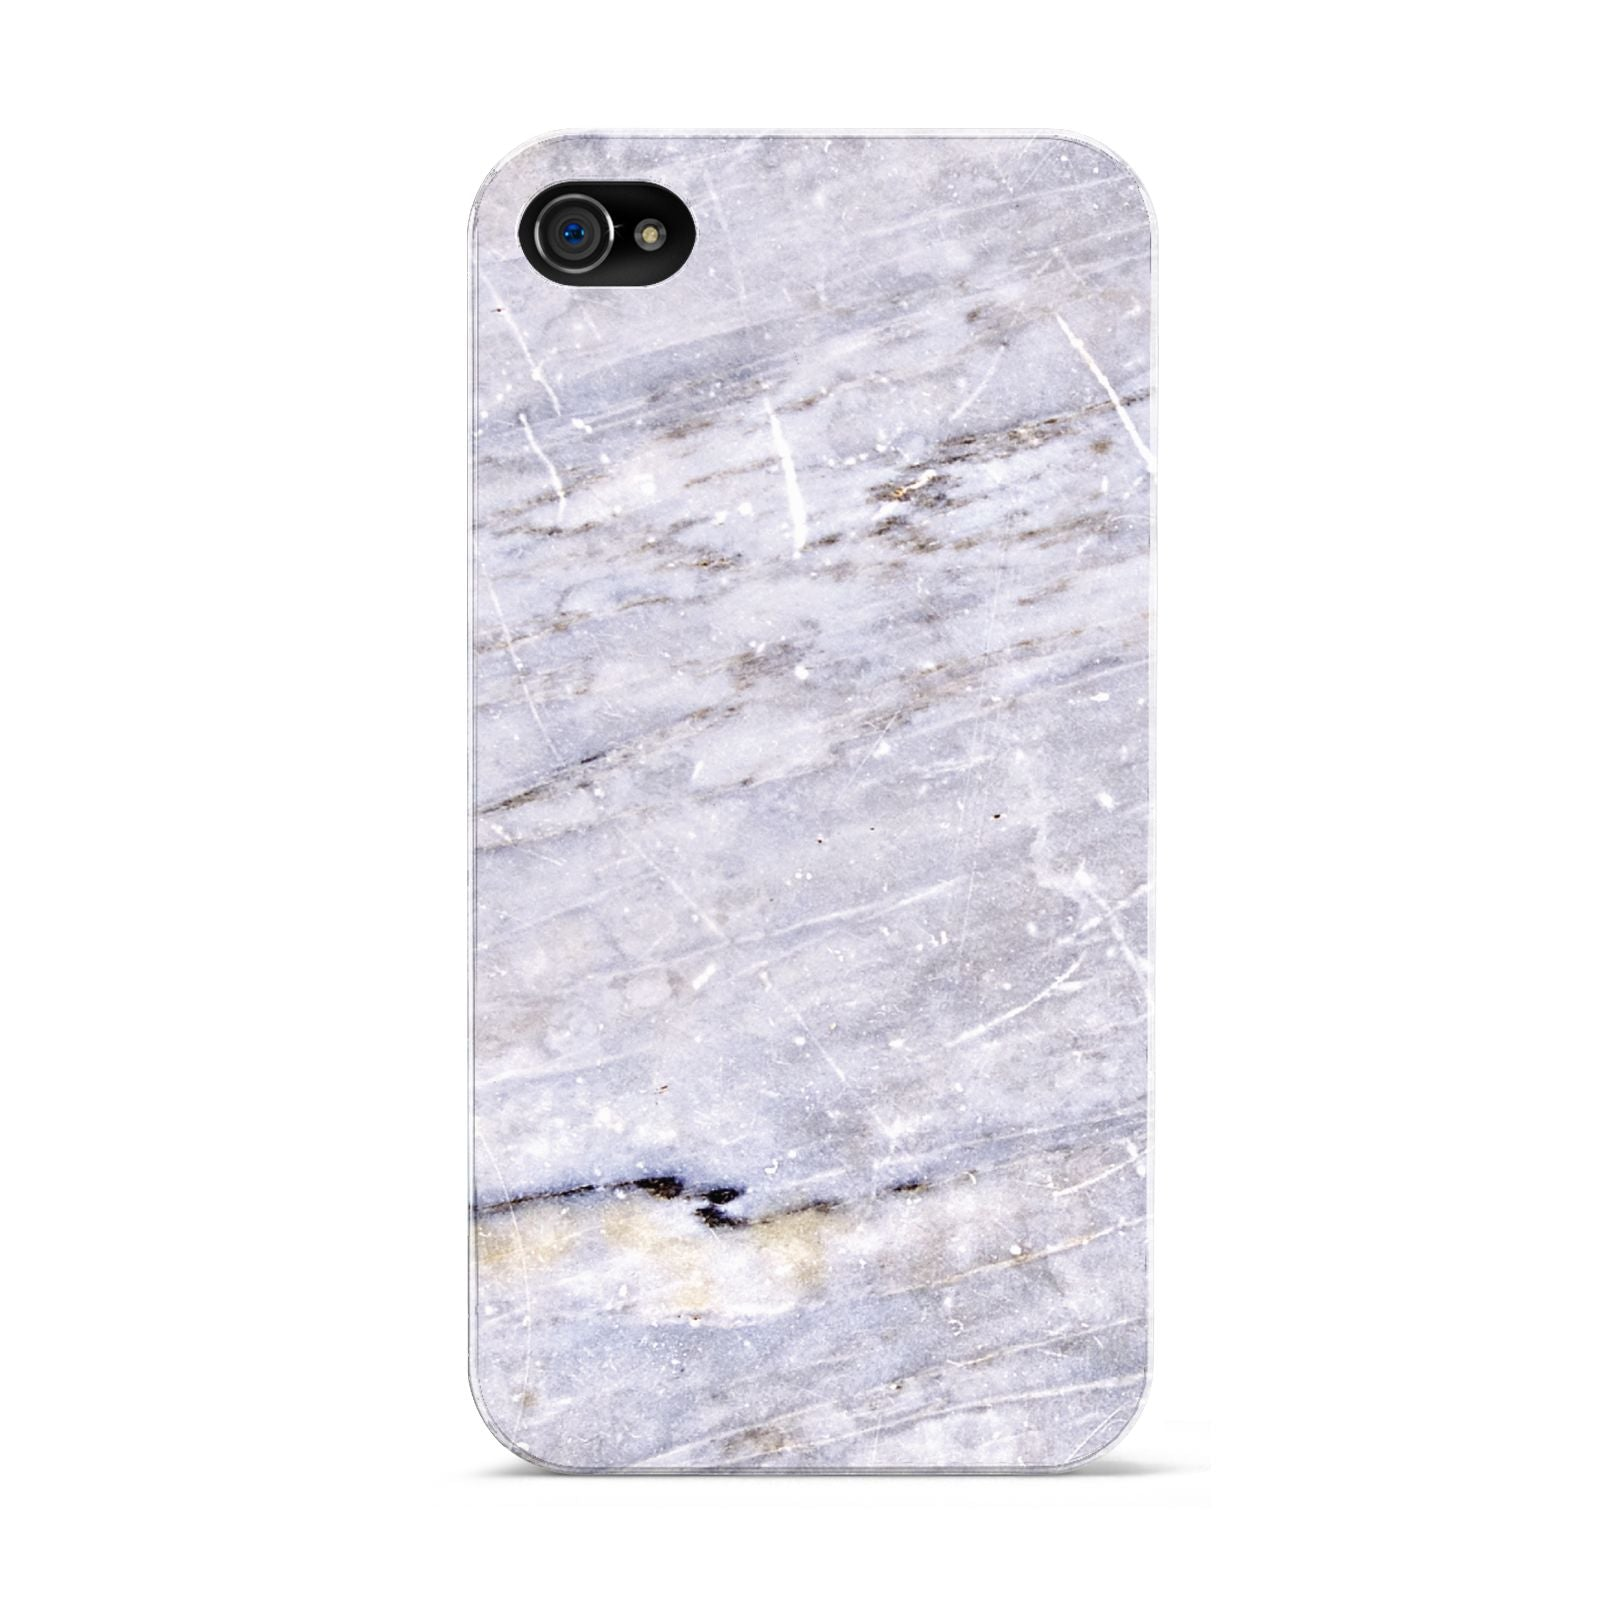 Faux Marble Mid Grey Apple iPhone 4s Case